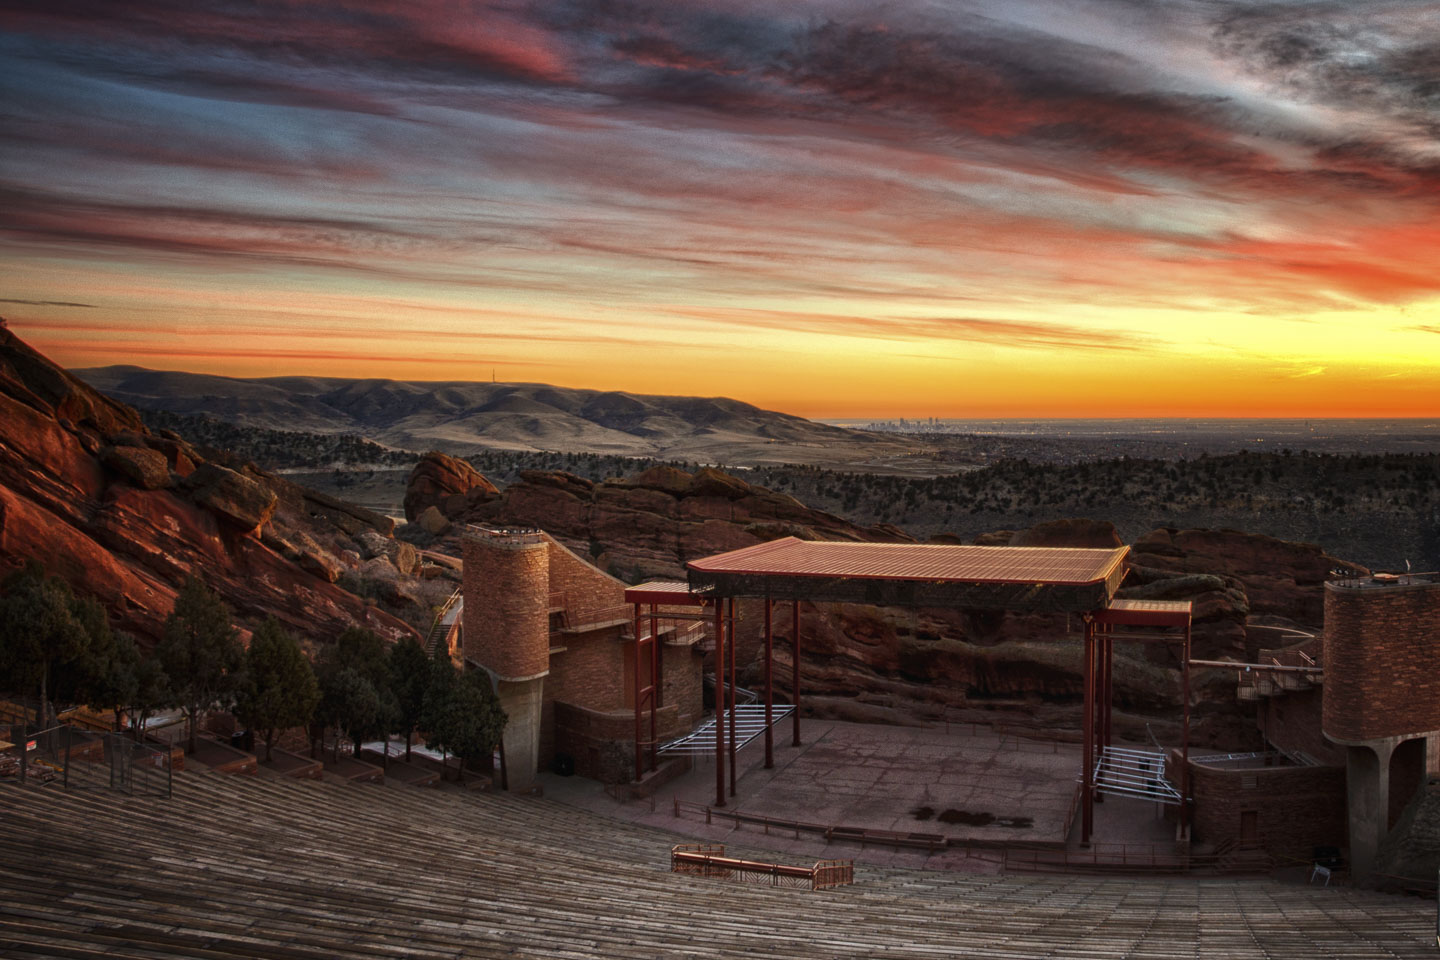 red-rocks-amphitheater-108.jpg